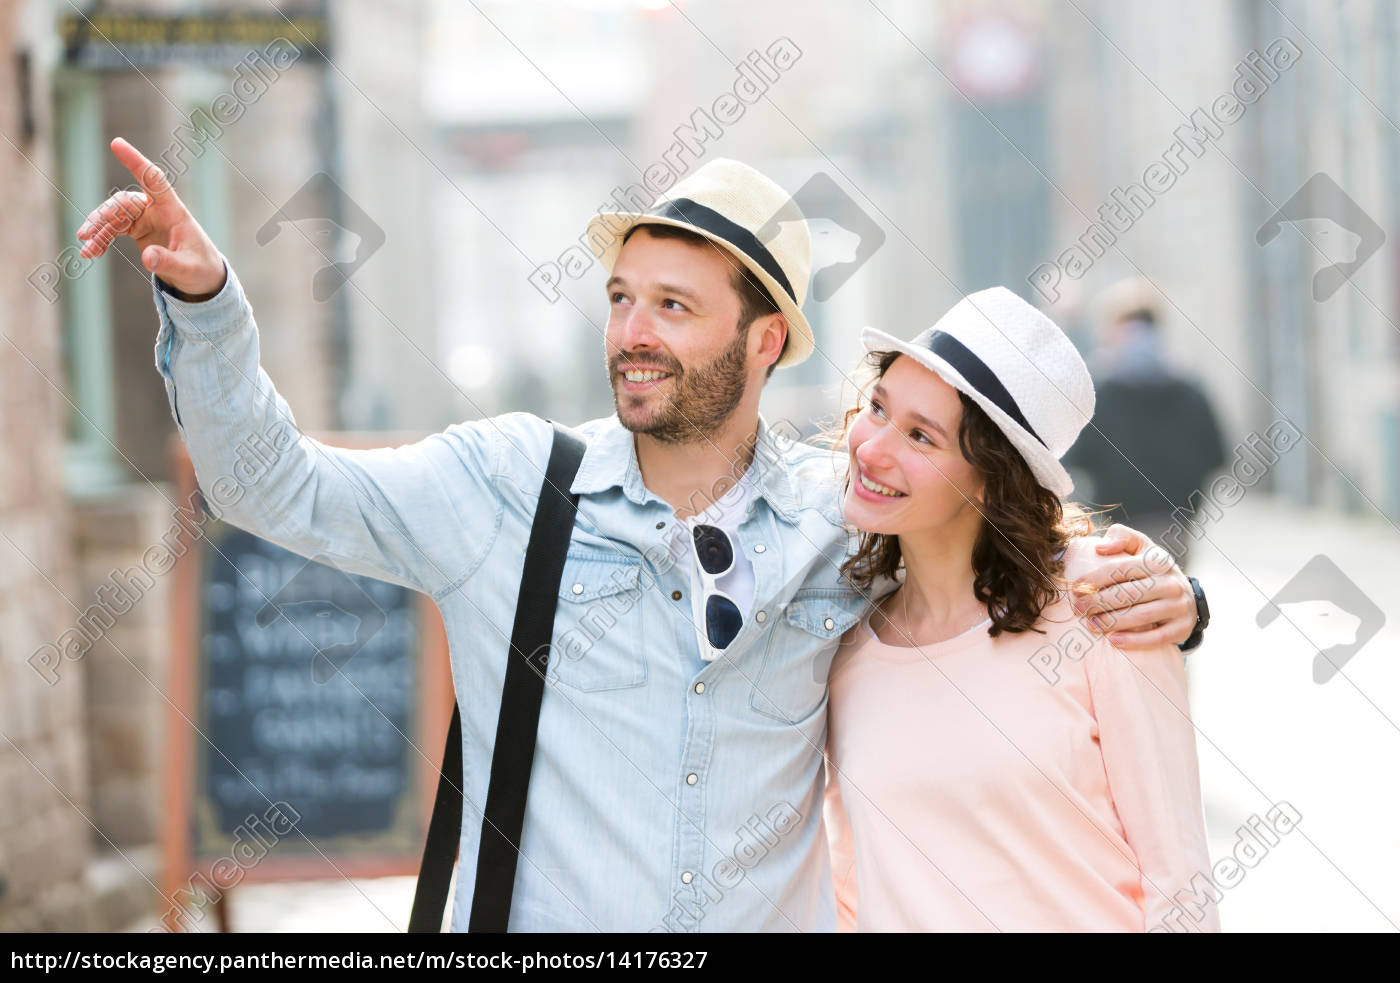 young, couple, visiting, city, during, holidays - 14176327